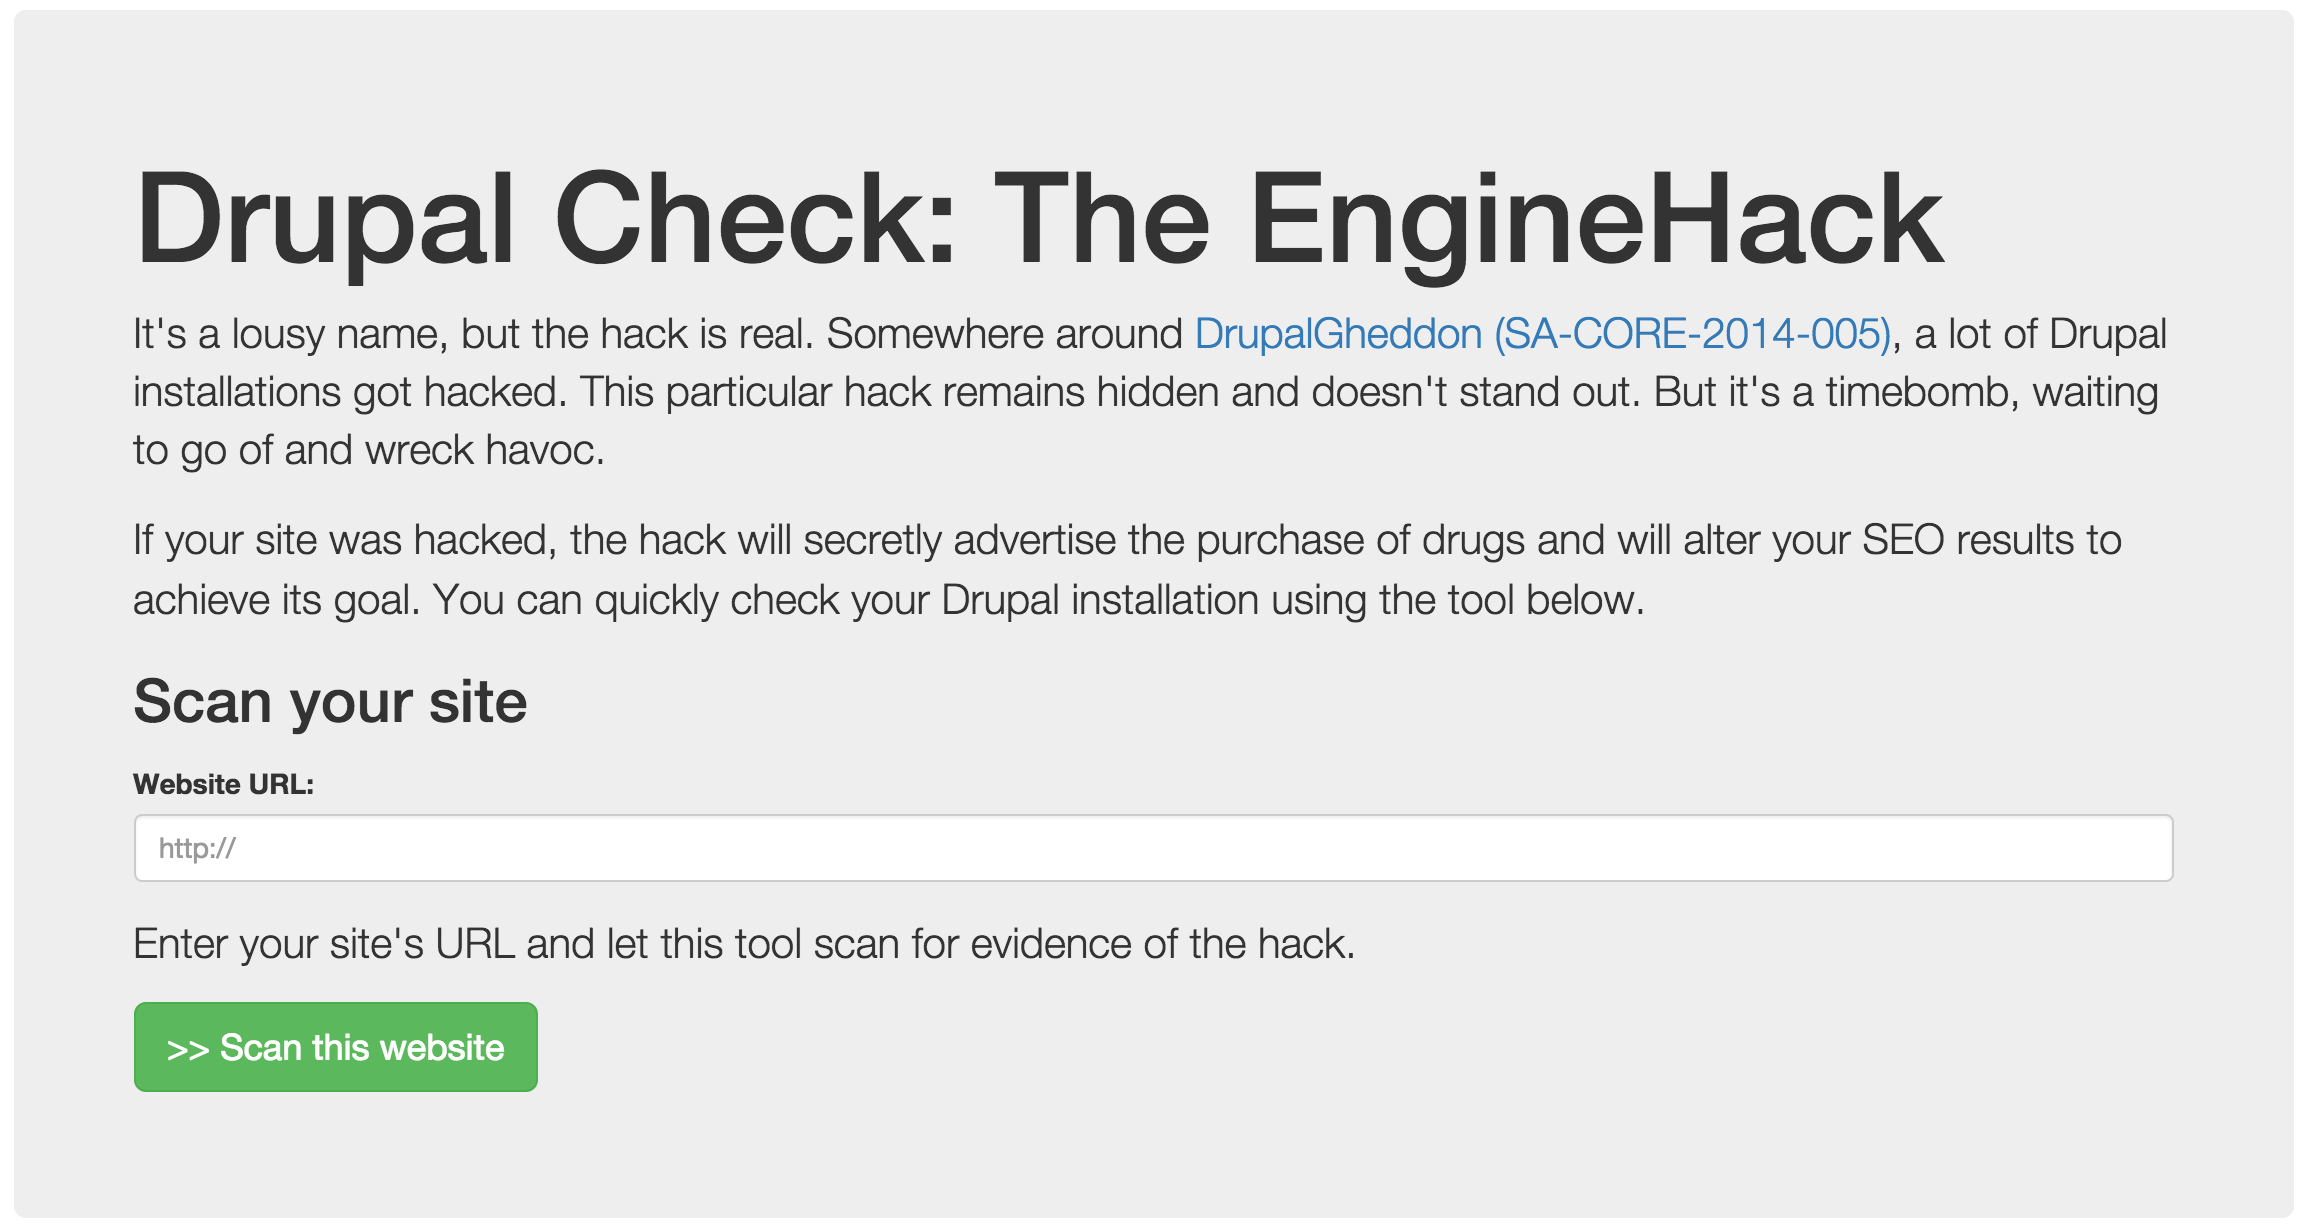 drupal_enginehack